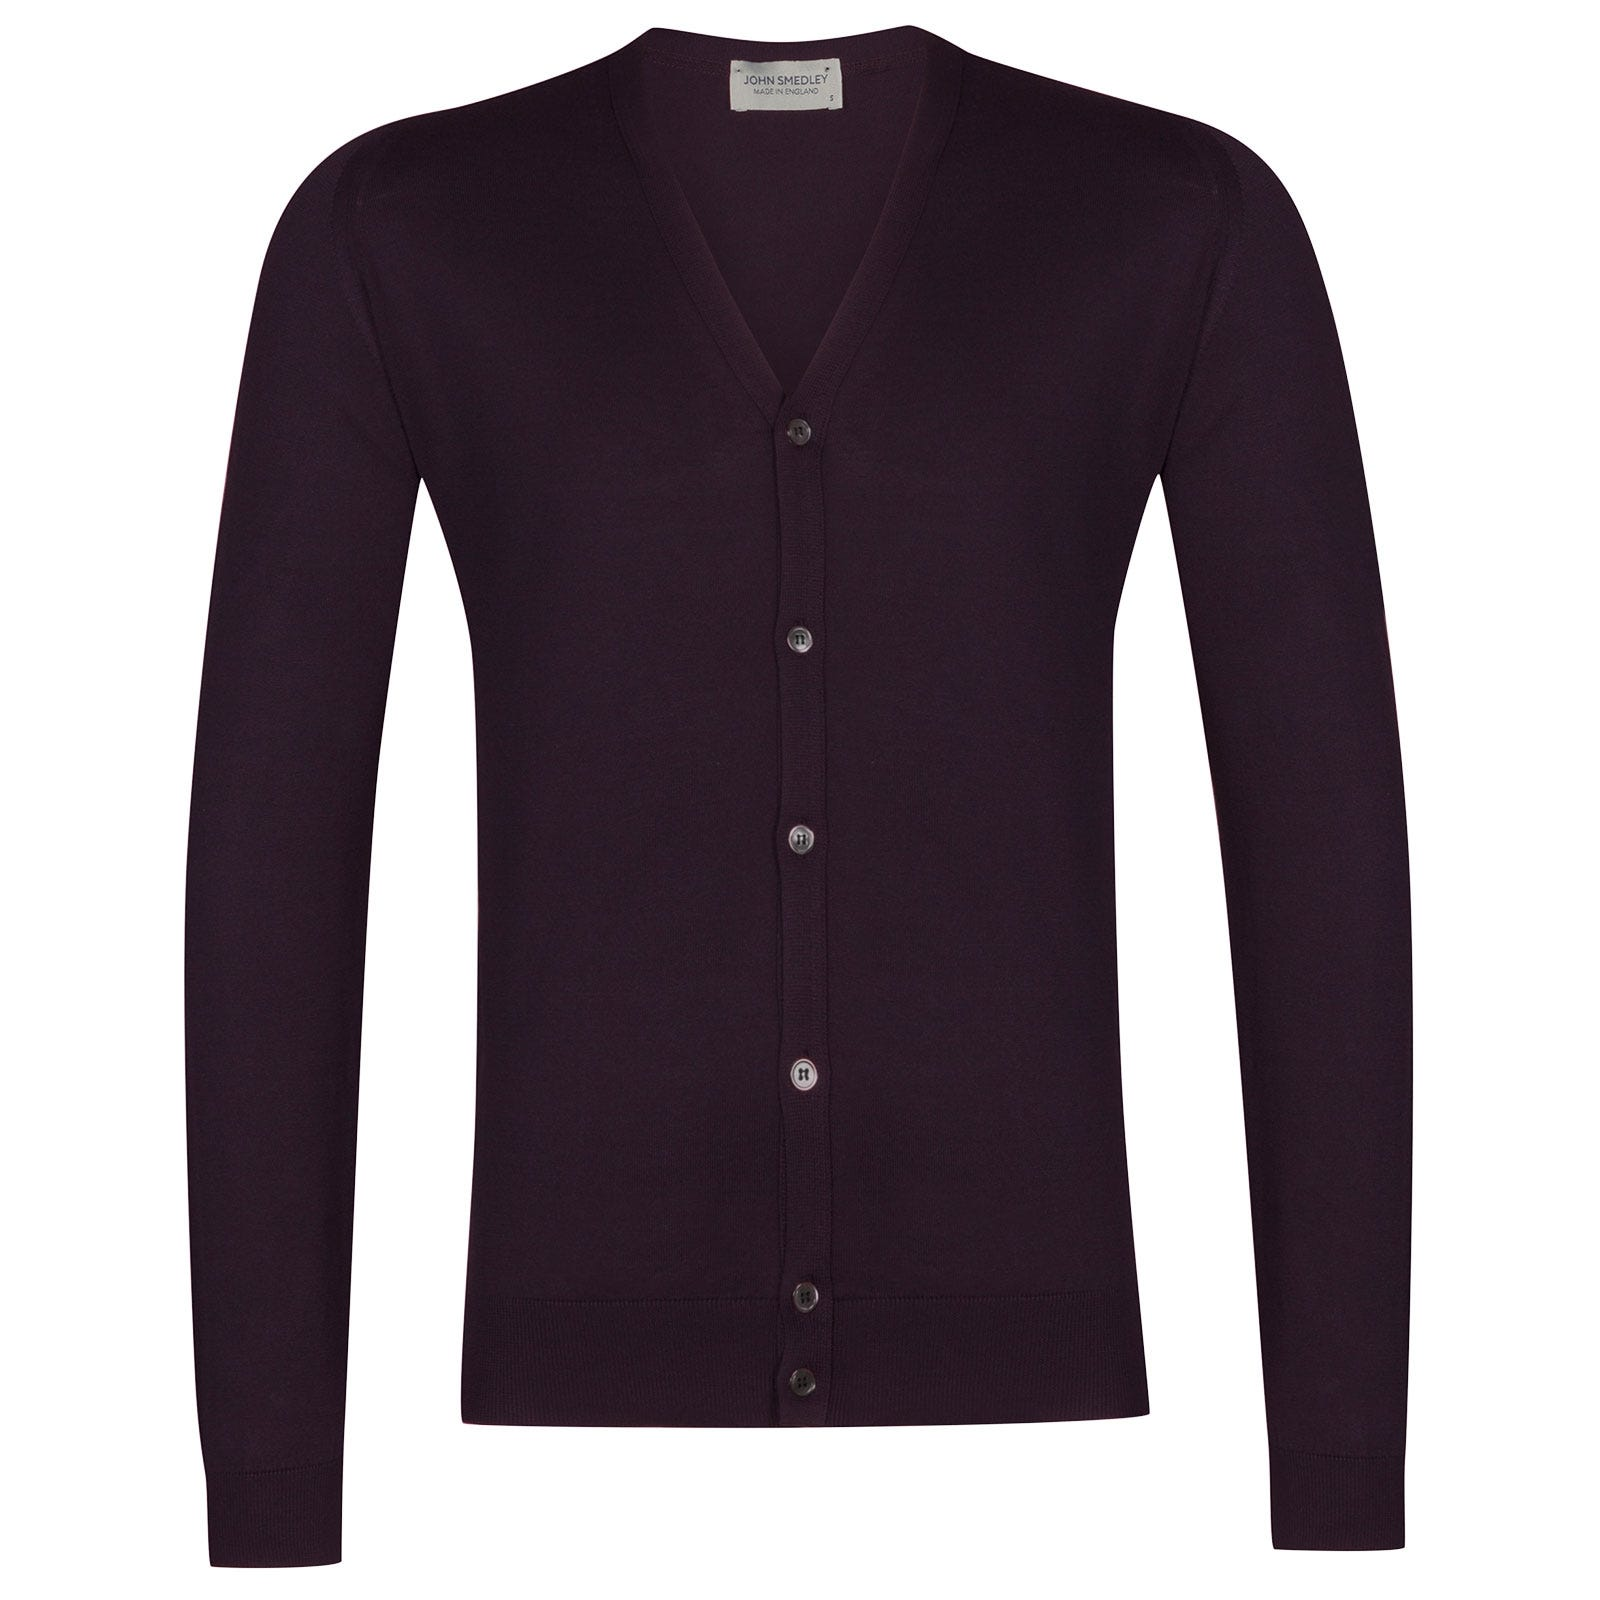 John Smedley Whitchurch Sea Island Cotton Cardigan in Mystic